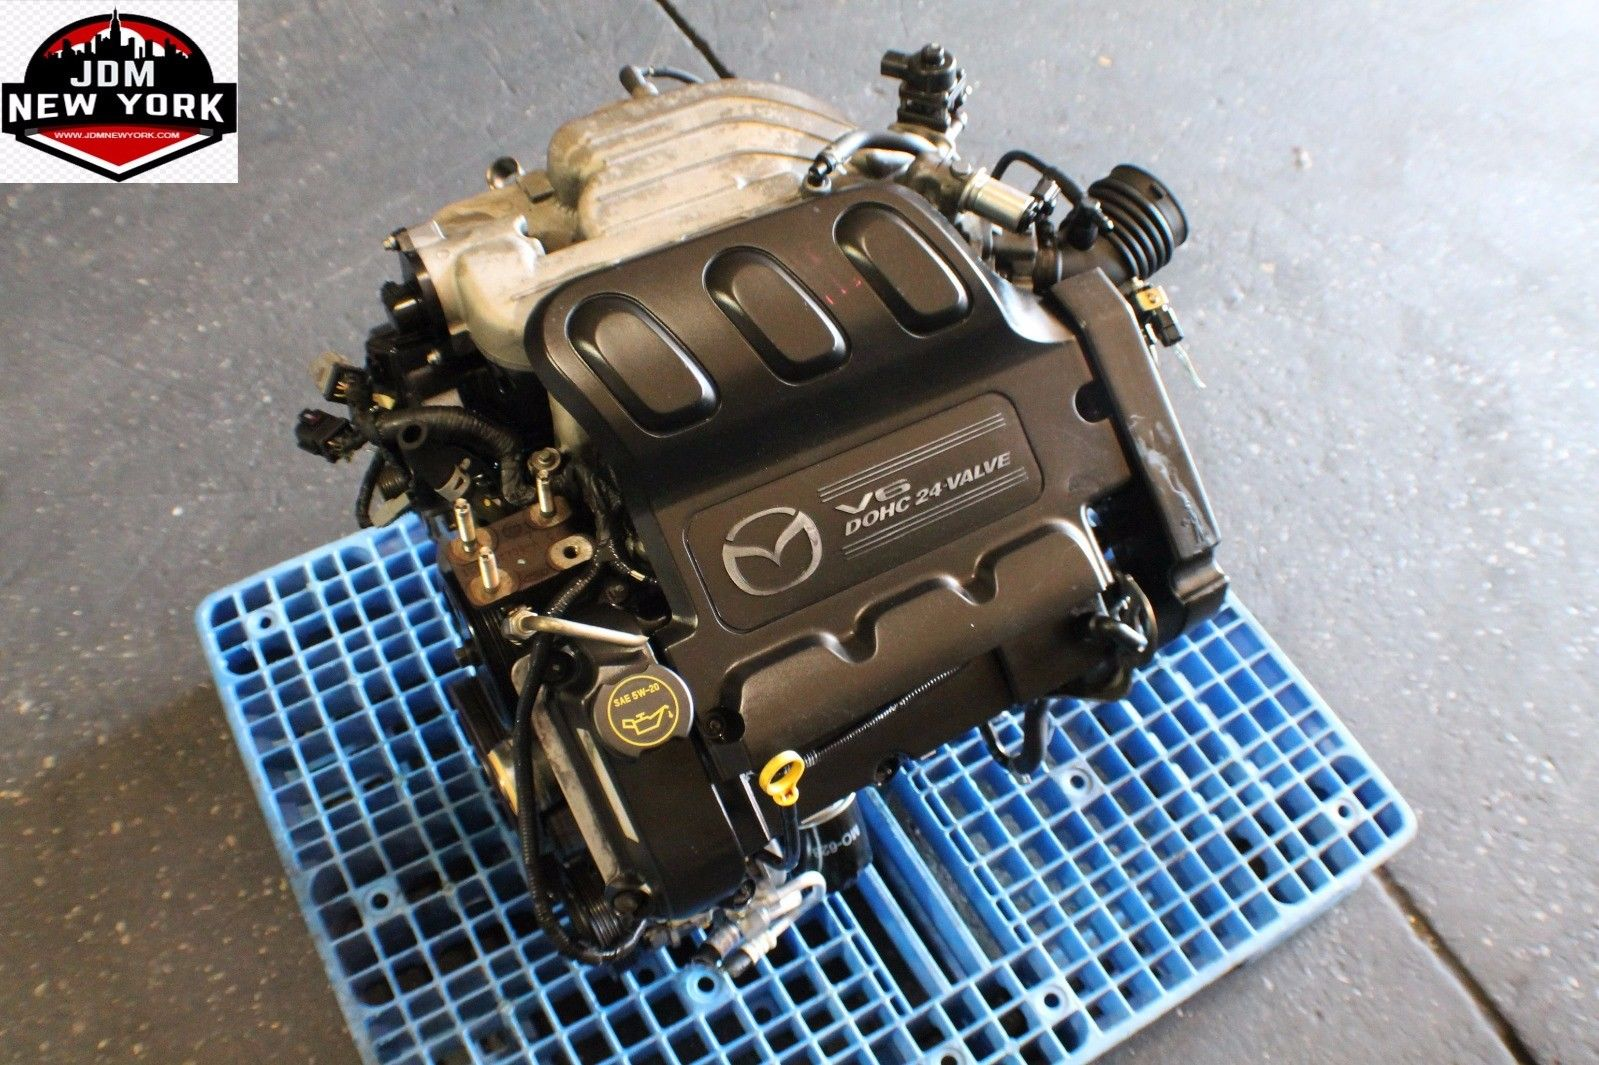 2001-2004 ford escape 3.0l dohc 24-valve duratec 30 v6 engine jdm aj | jdm  new york  jdm new york